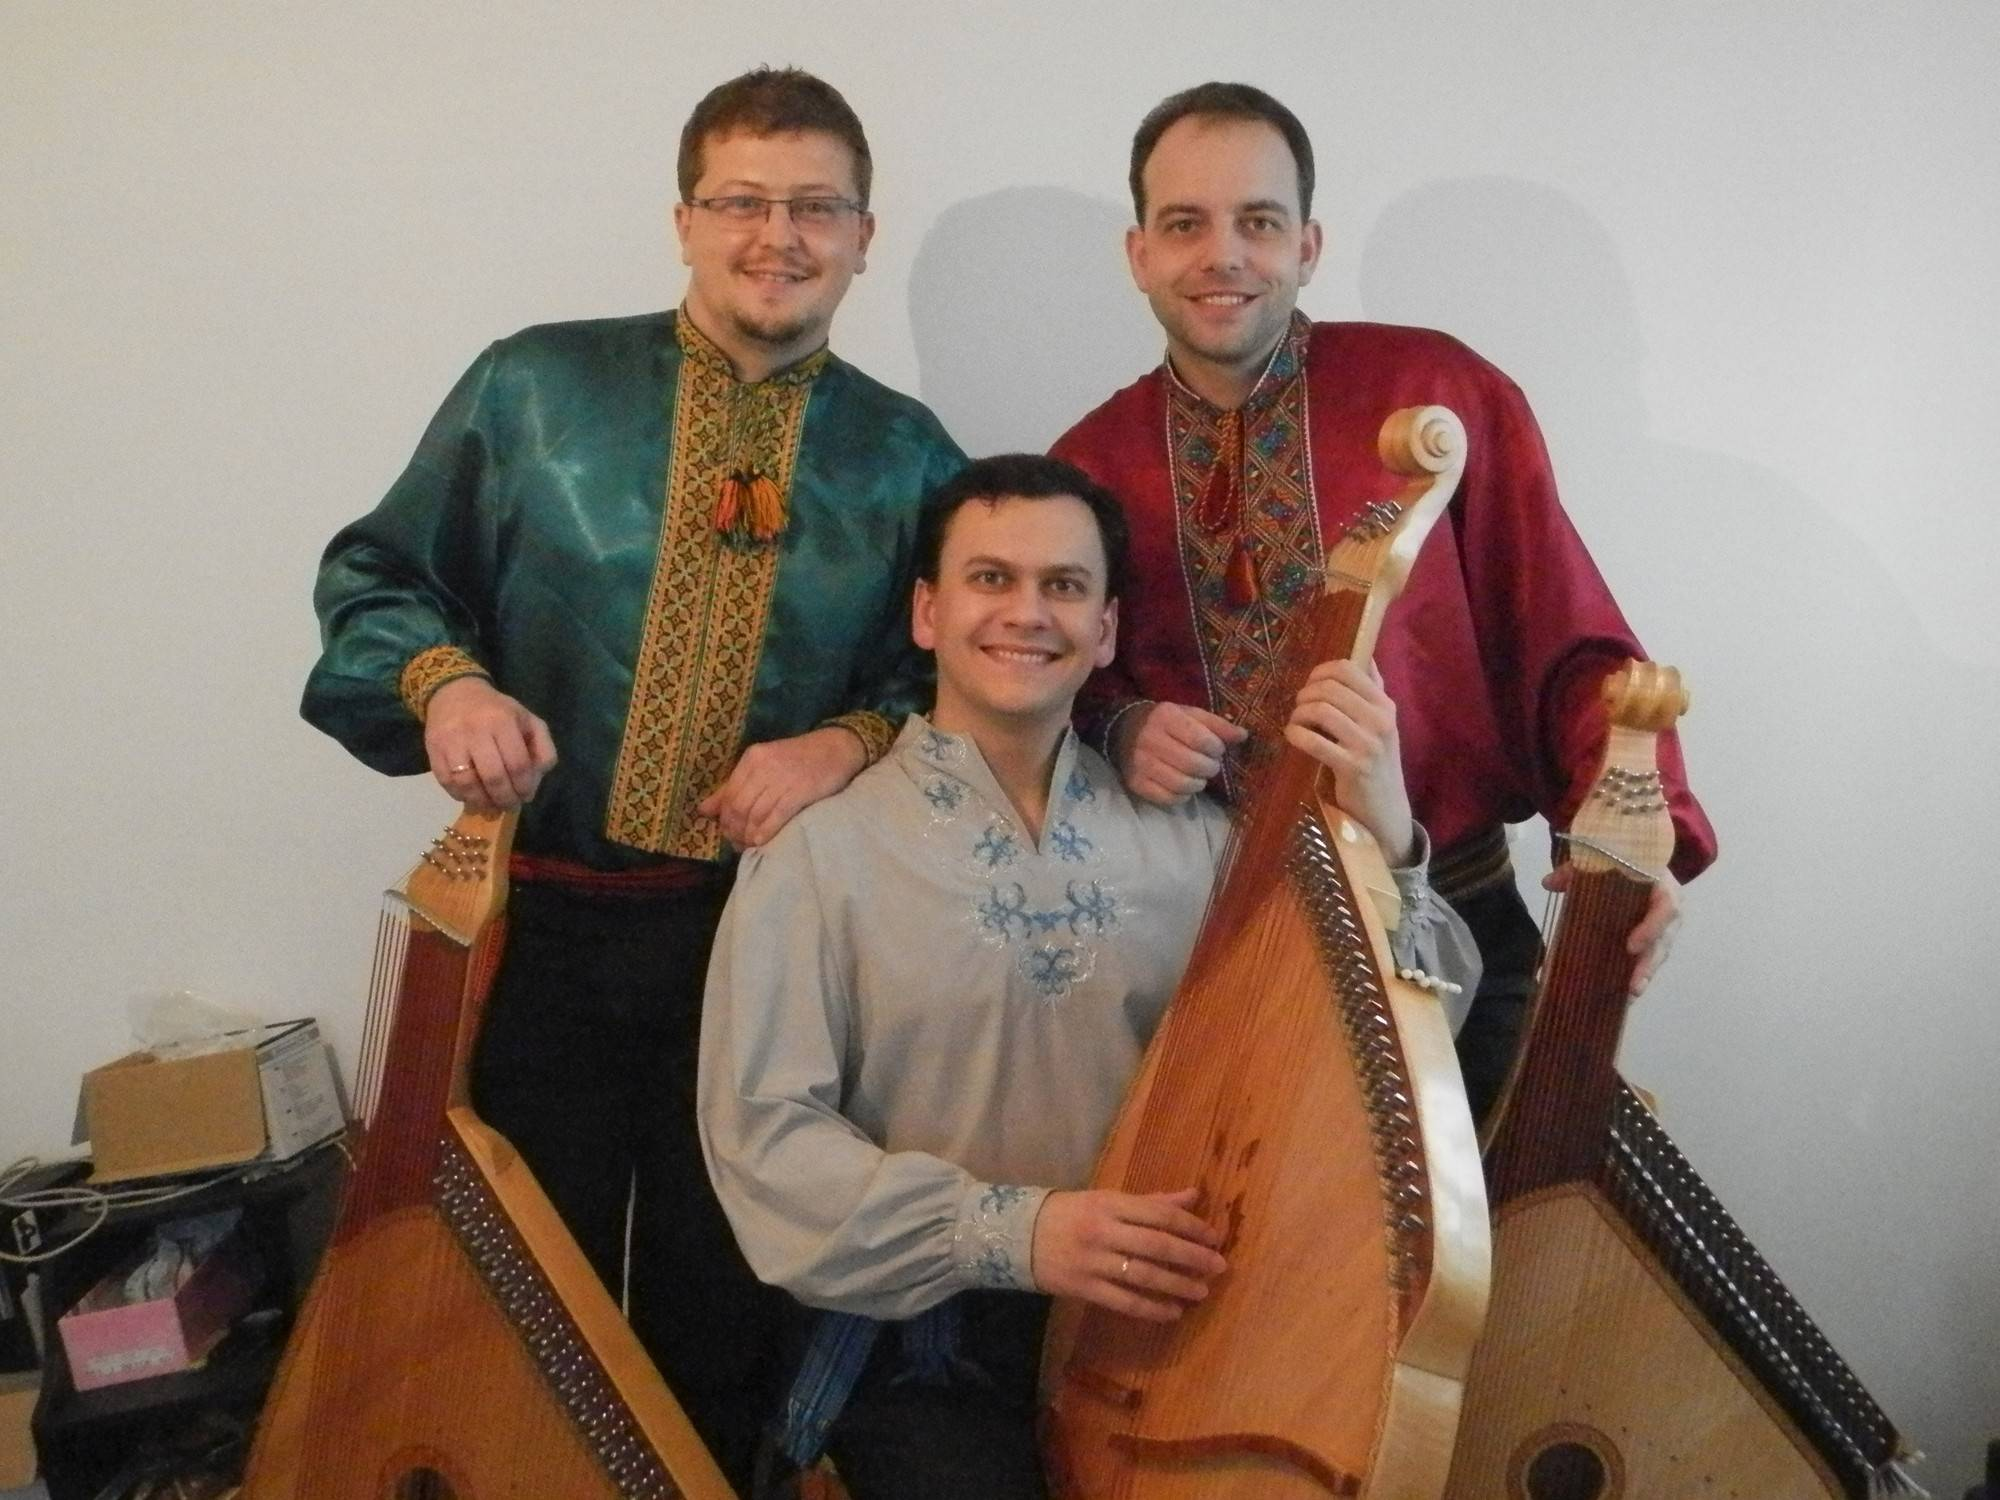 These Ukrainian musicians will be performing Saturday at the Palatine Library in celebration of the 200th birthday of Ukrainian poet Taras Shevchenko.